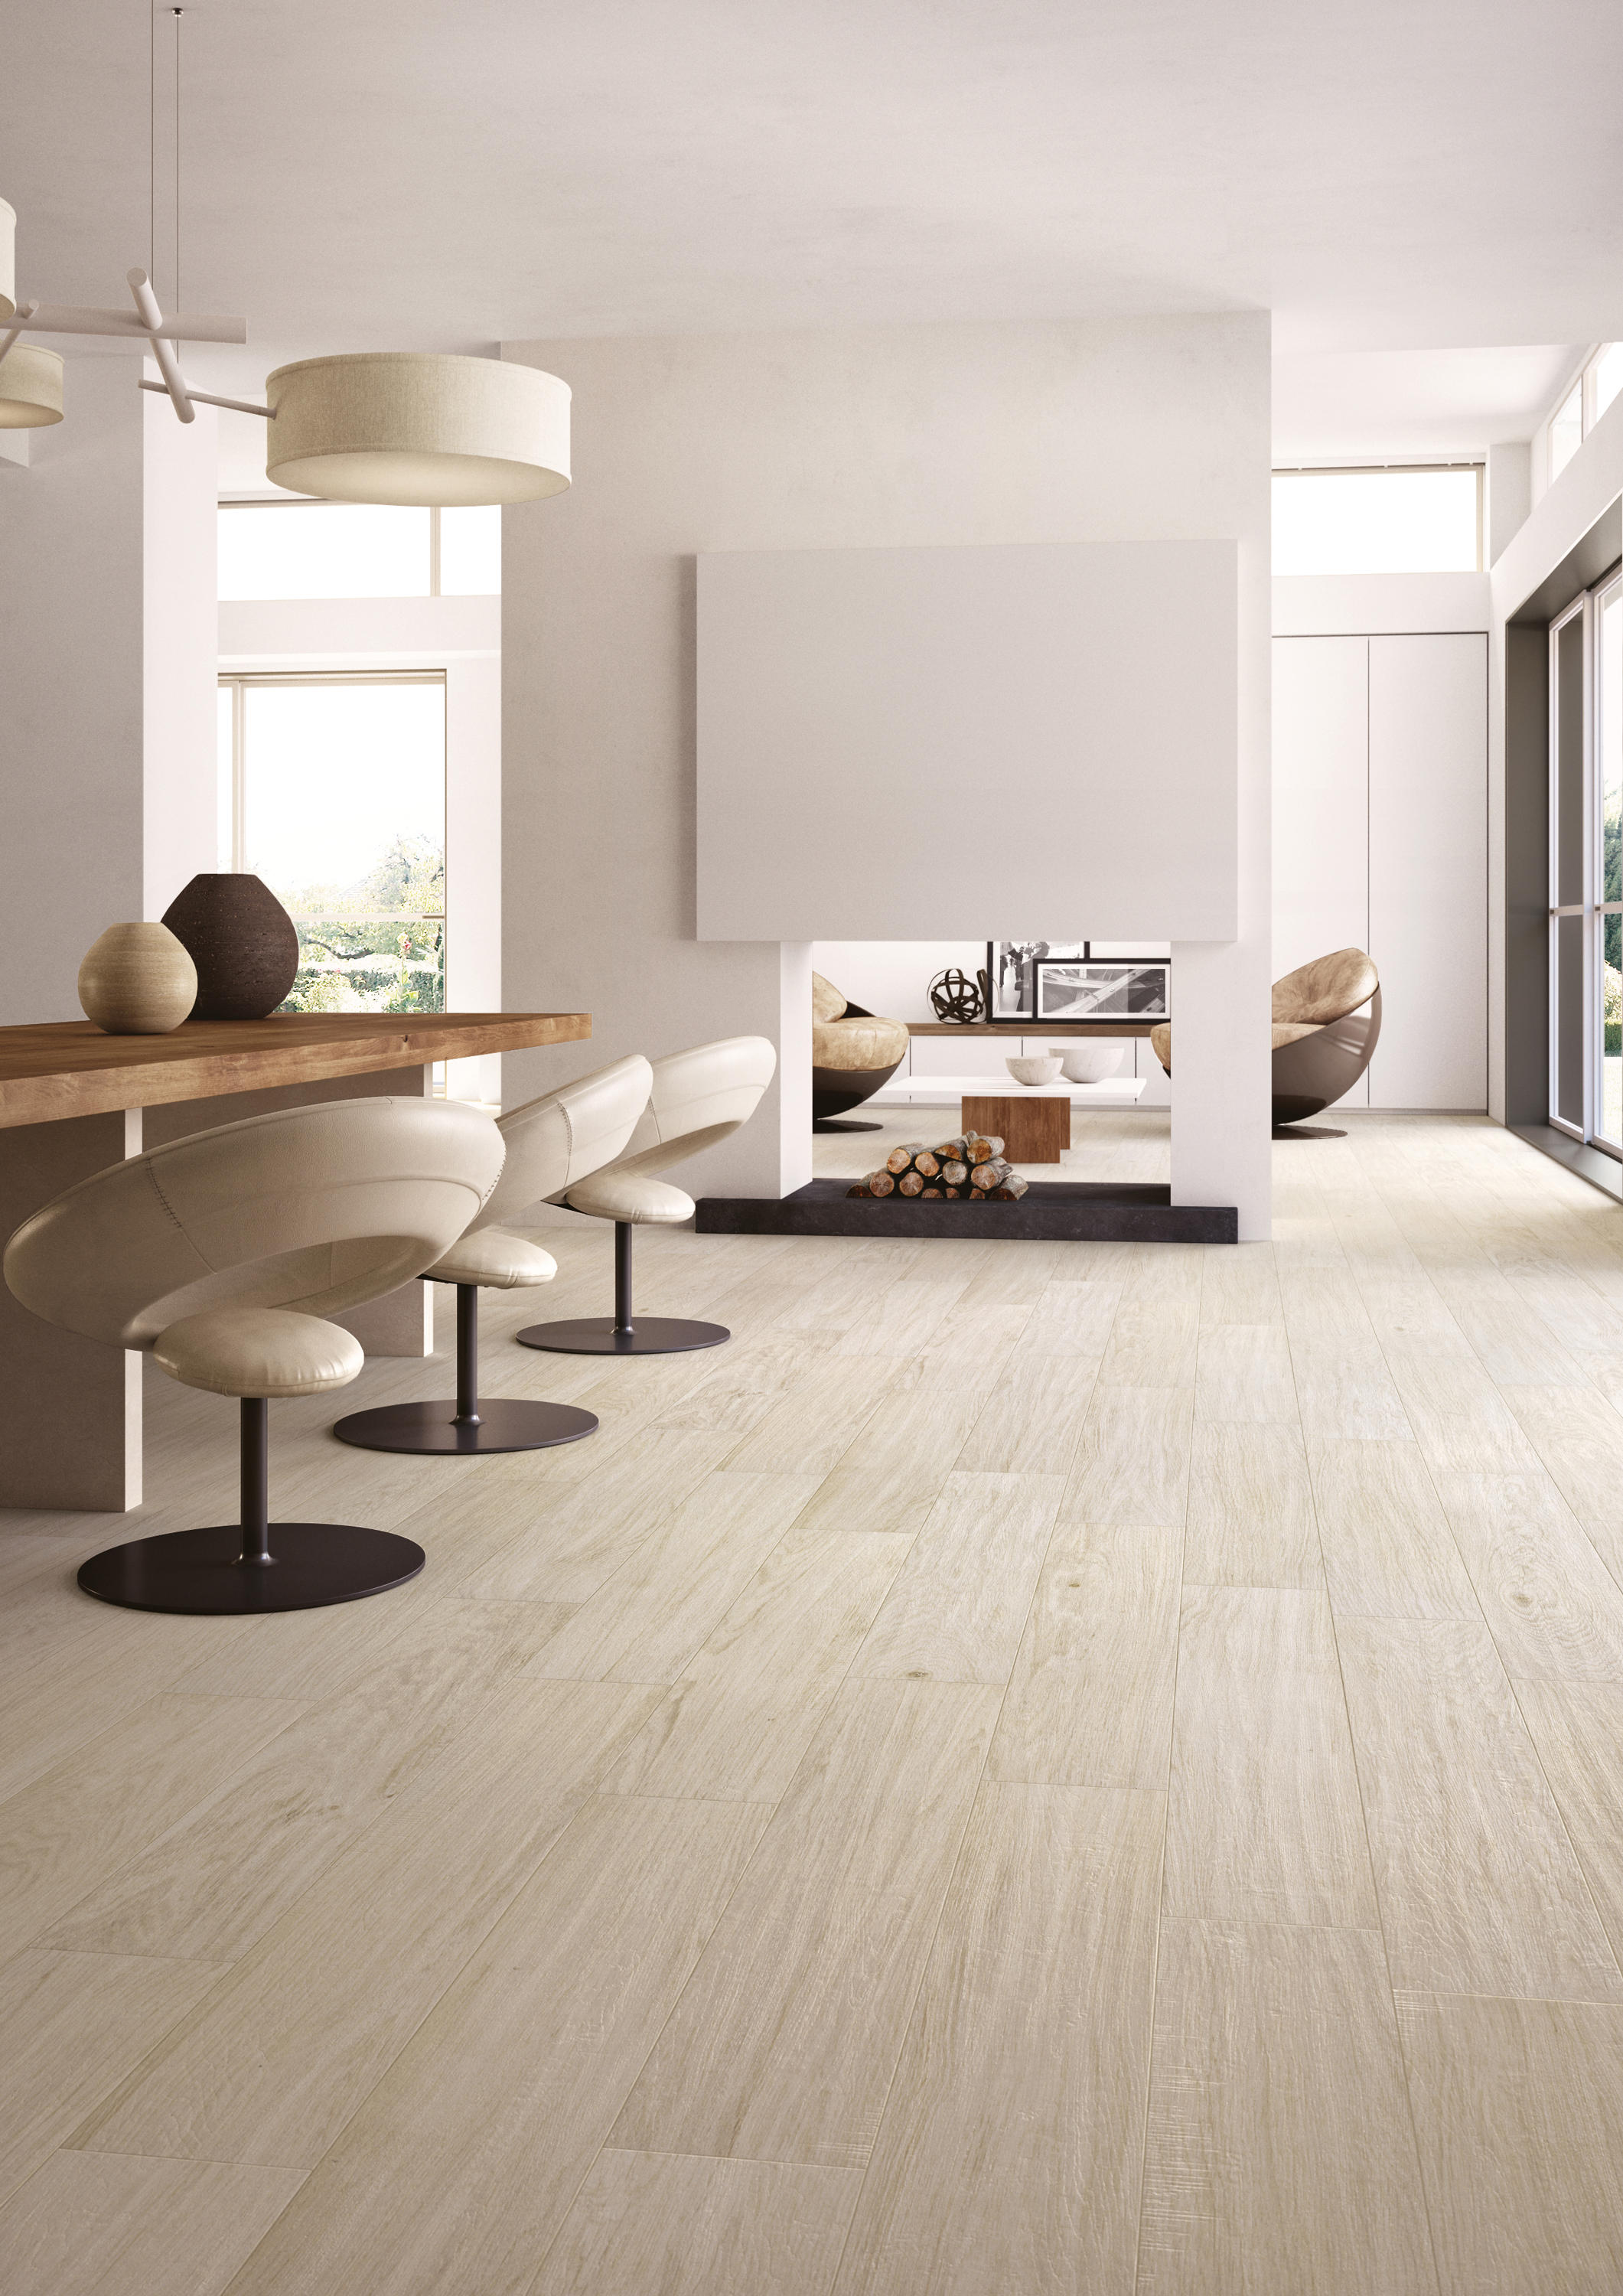 silvis candeo floor tiles from cotto d 39 este architonic